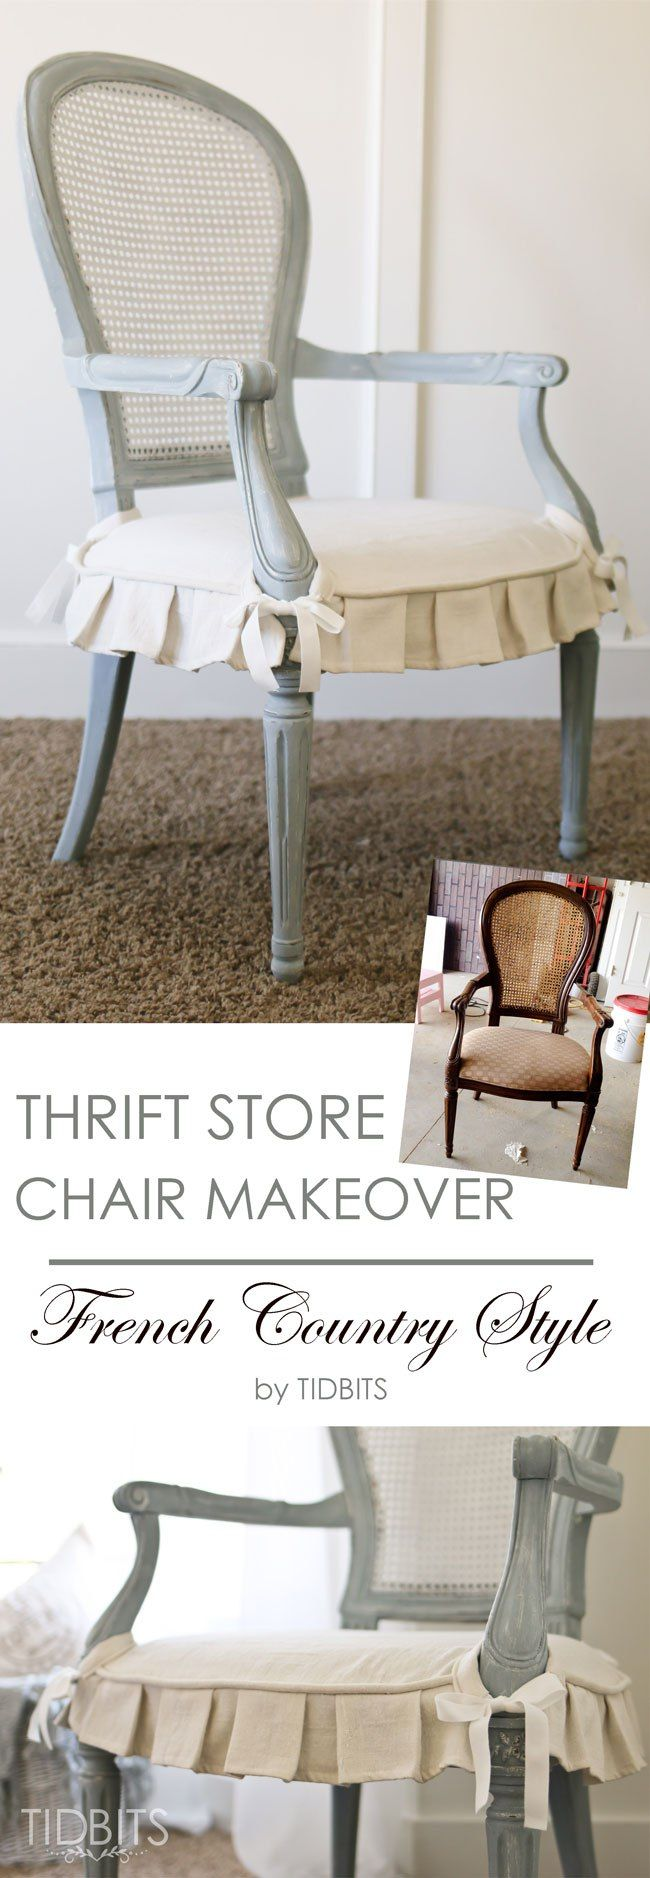 Best 25+ Dining chair makeover ideas on Pinterest